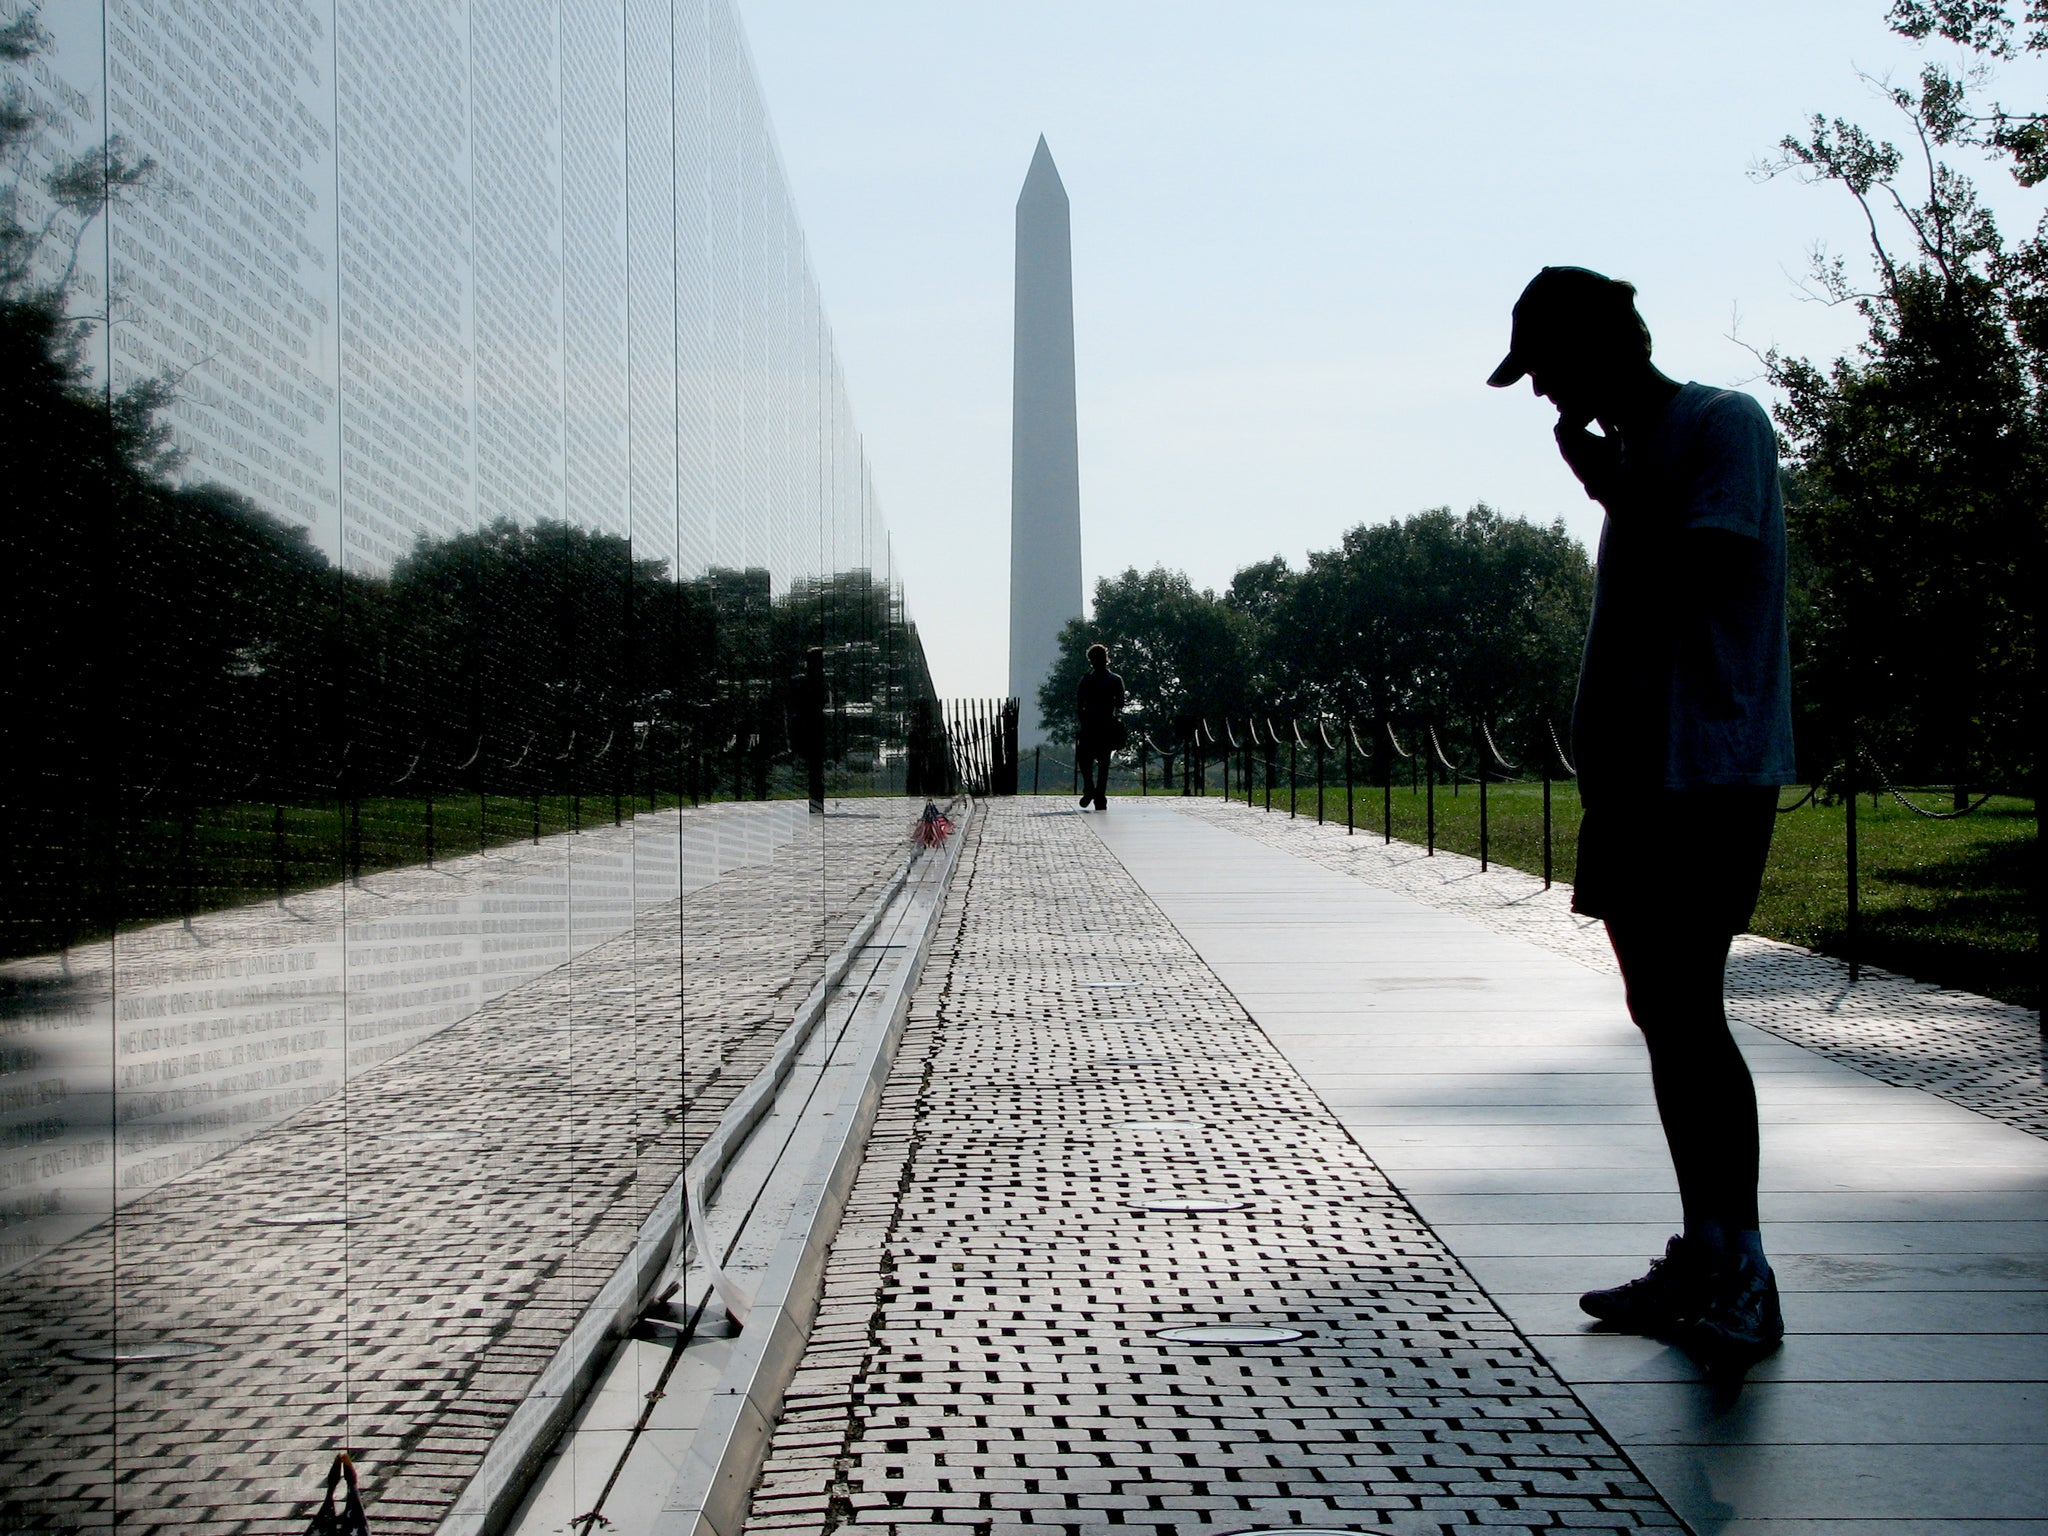 Who Designed The Vietnam Veterans Memorial?